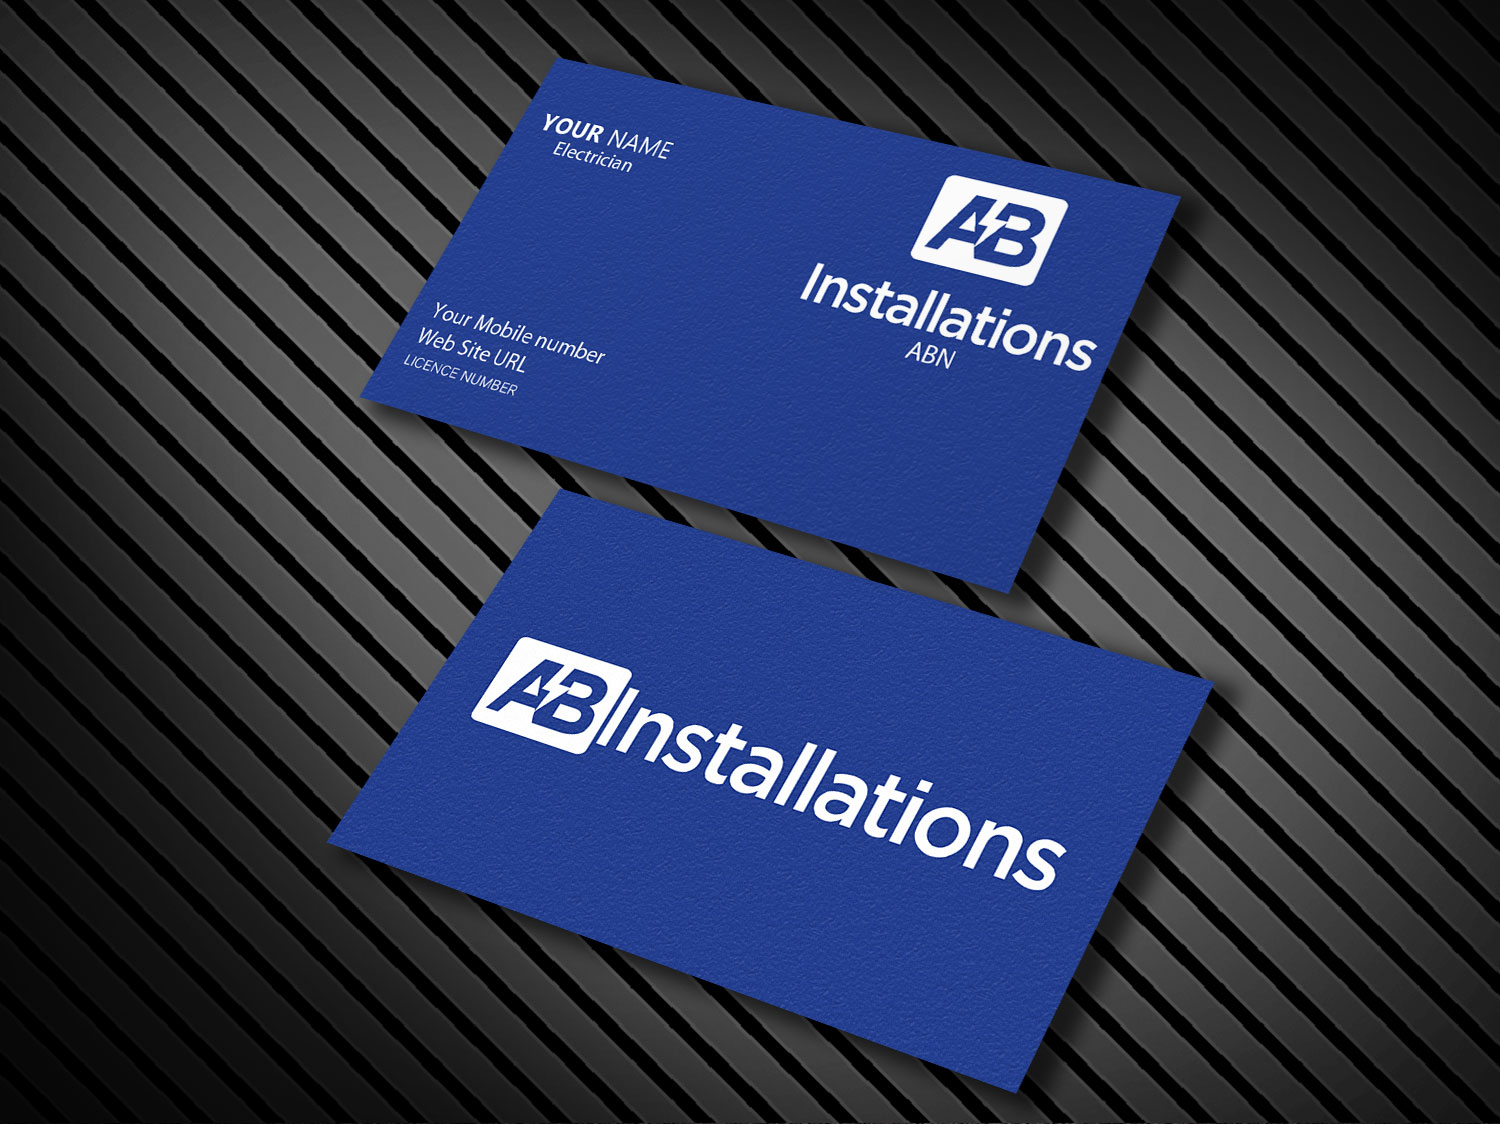 Electrician business card design for ab installations by pawana business card design by pawana designs for ab installations design 4509415 colourmoves Images